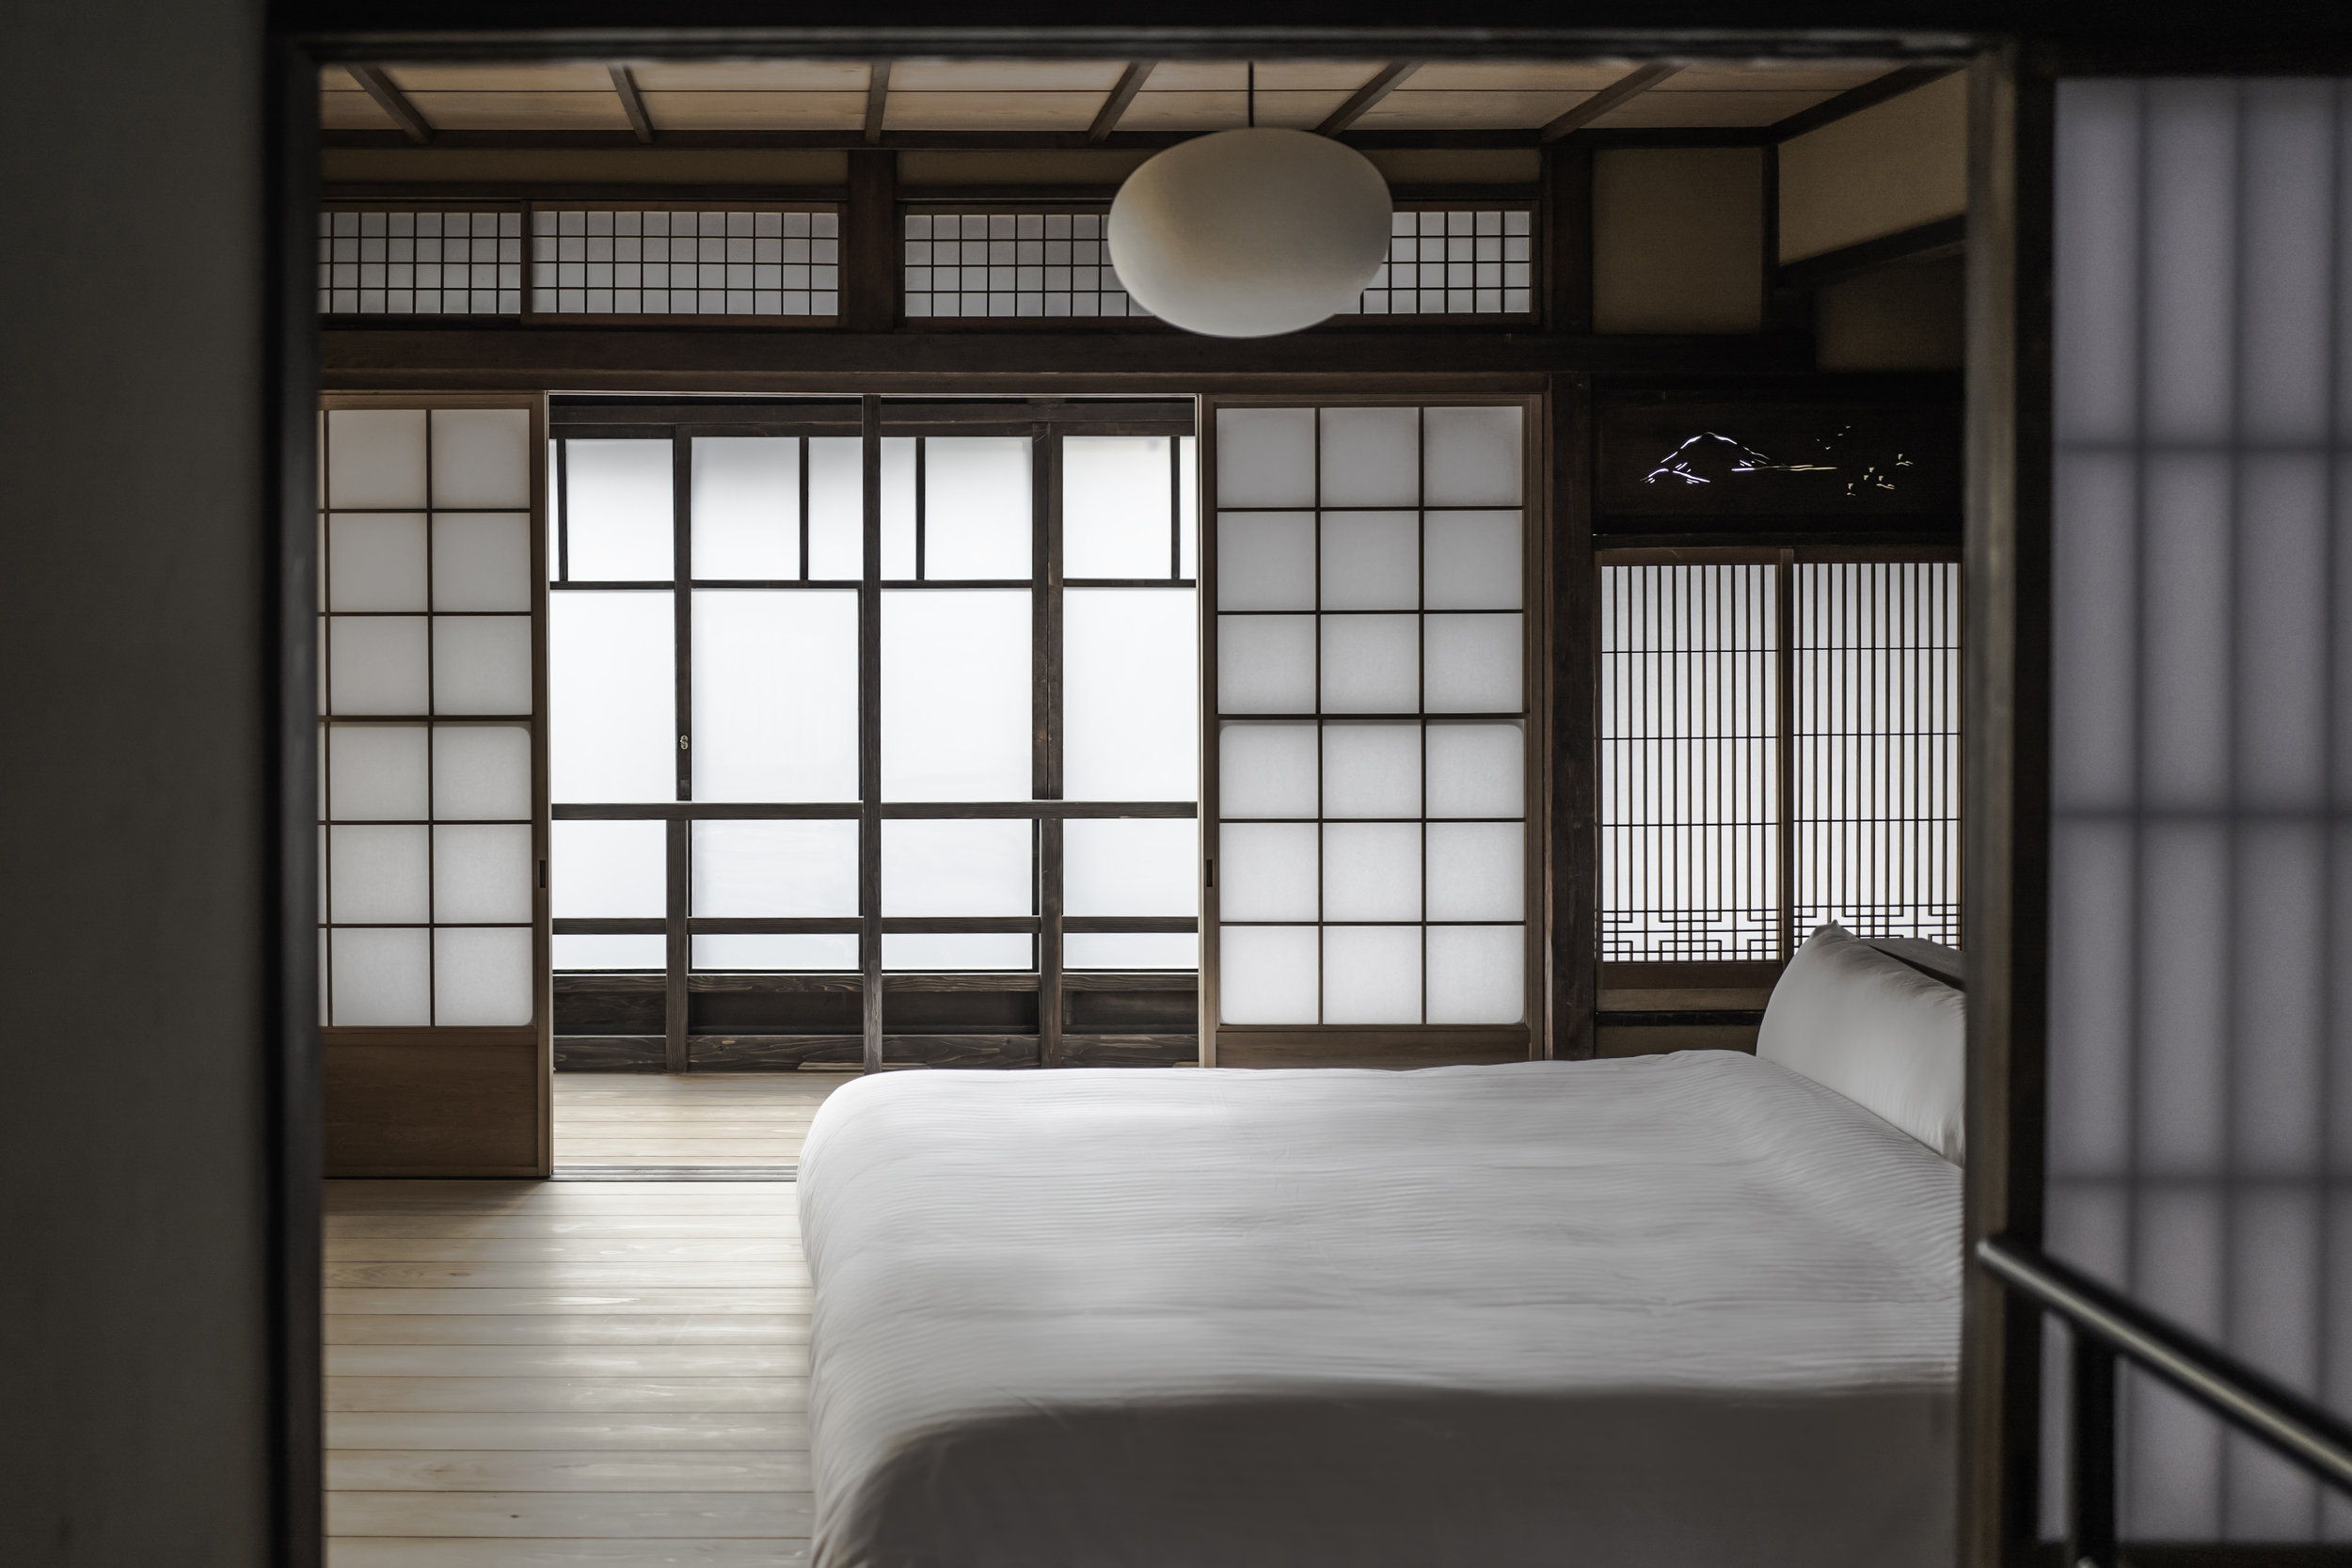 Maana_Kyoto_Master_ Bedroom _small.jpg